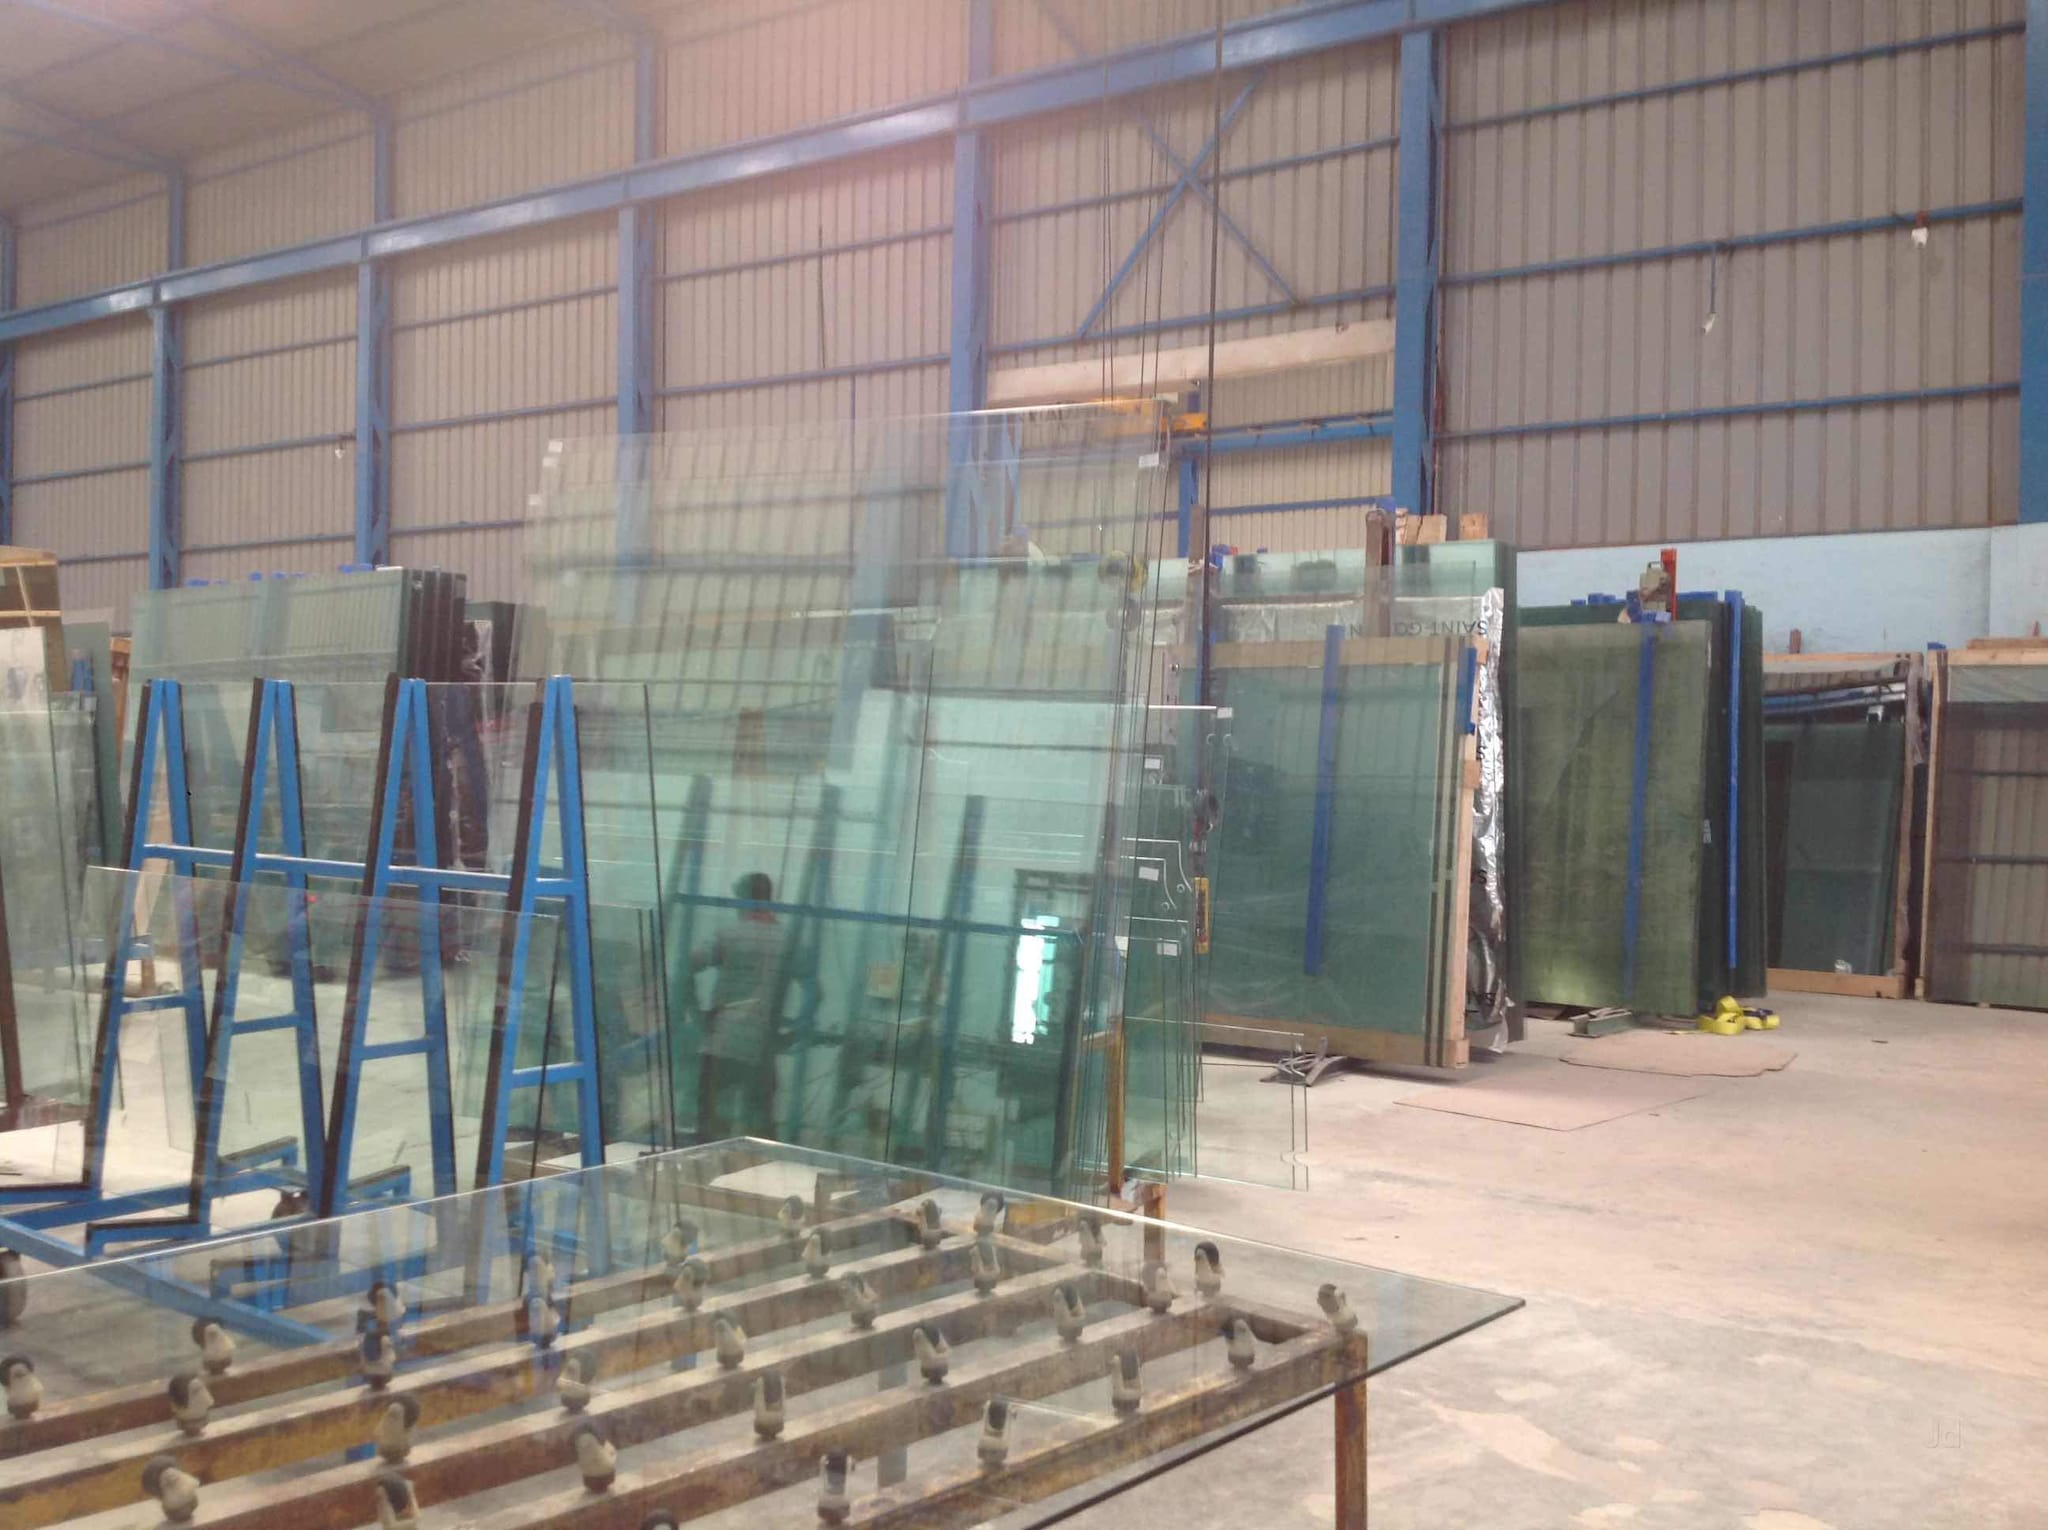 ad2231f6d01 Top 100 Toughened Glass Manufacturers in Bangalore - Justdial